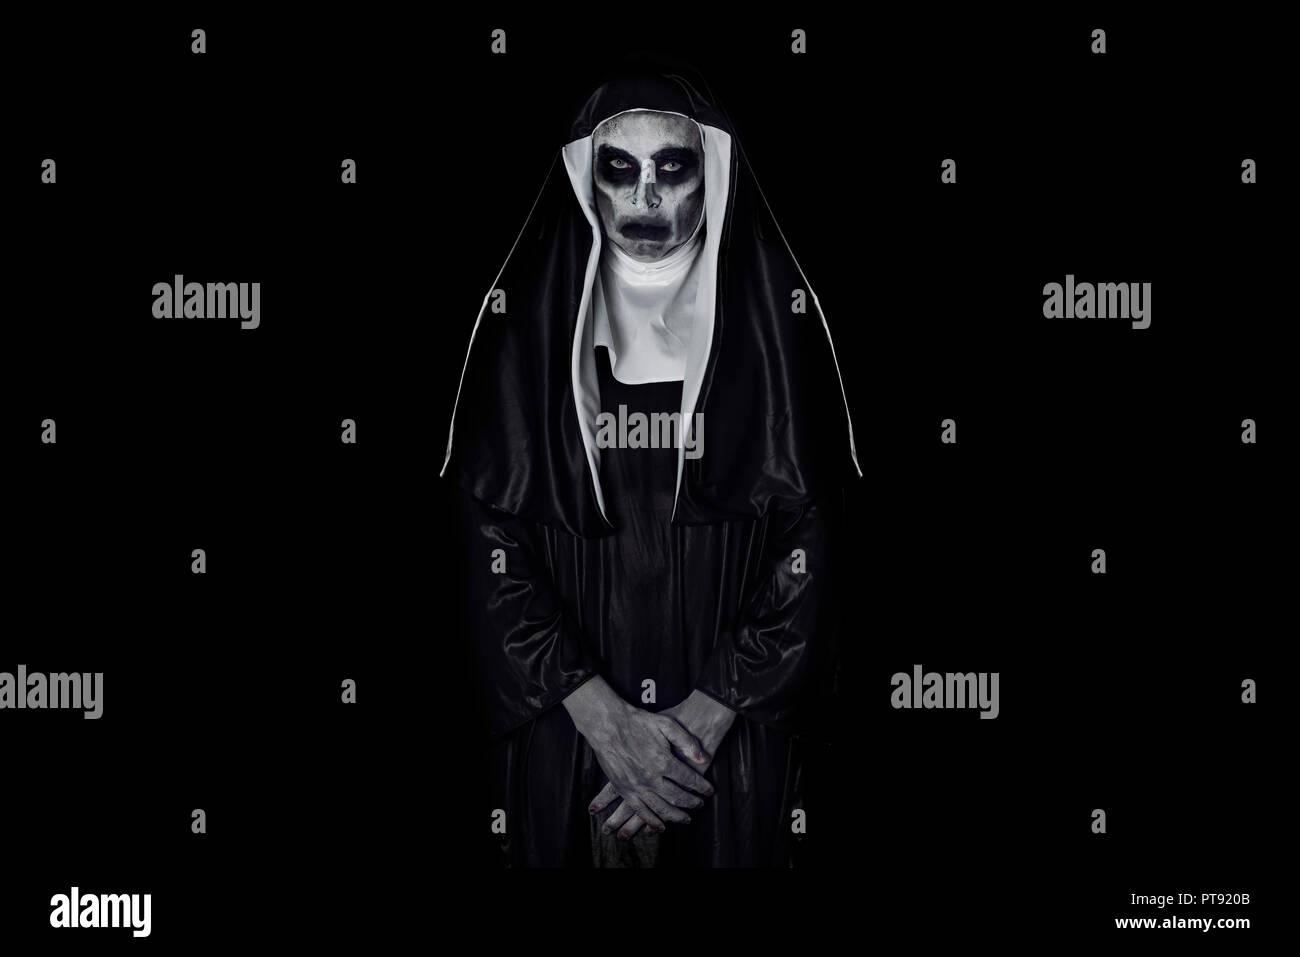 portrait of a frightening evil nun, wearing a typical black and white habit, against a black background, with some blank space around her - Stock Image